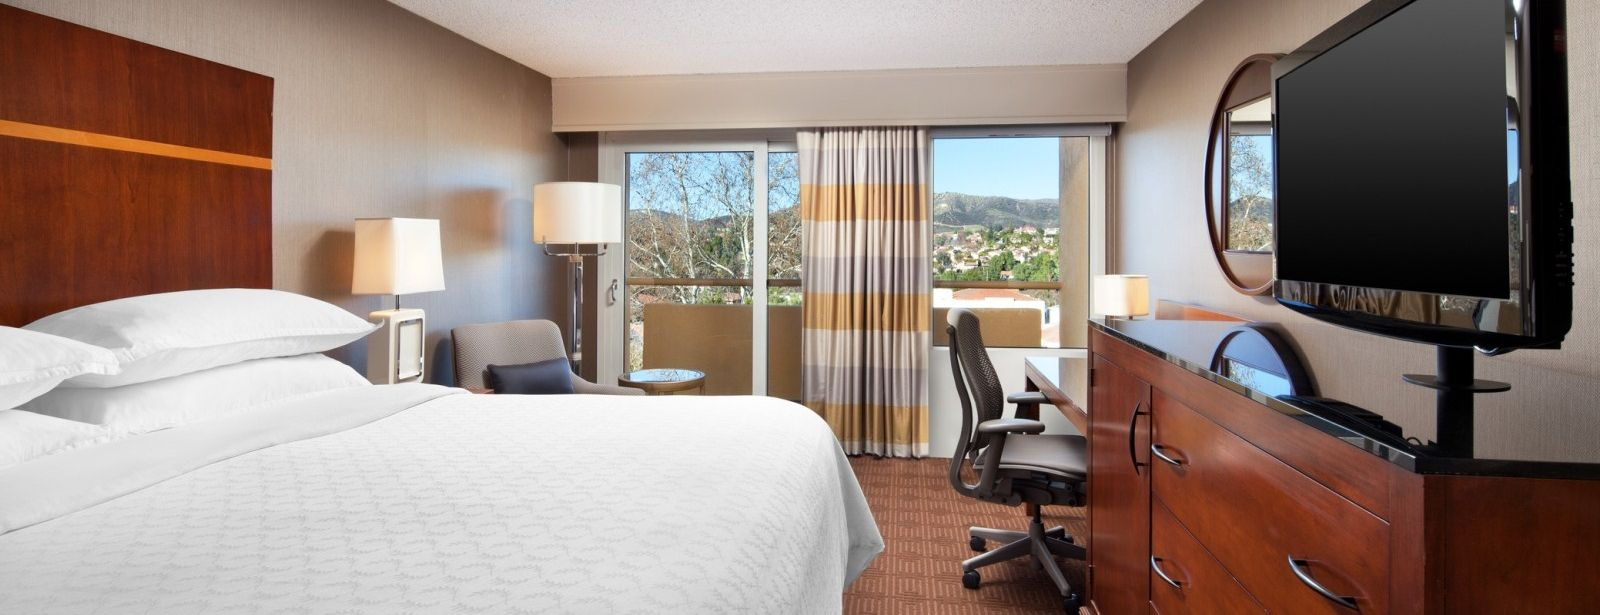 Sheraton Agoura Hills Hotel - Traditional Room